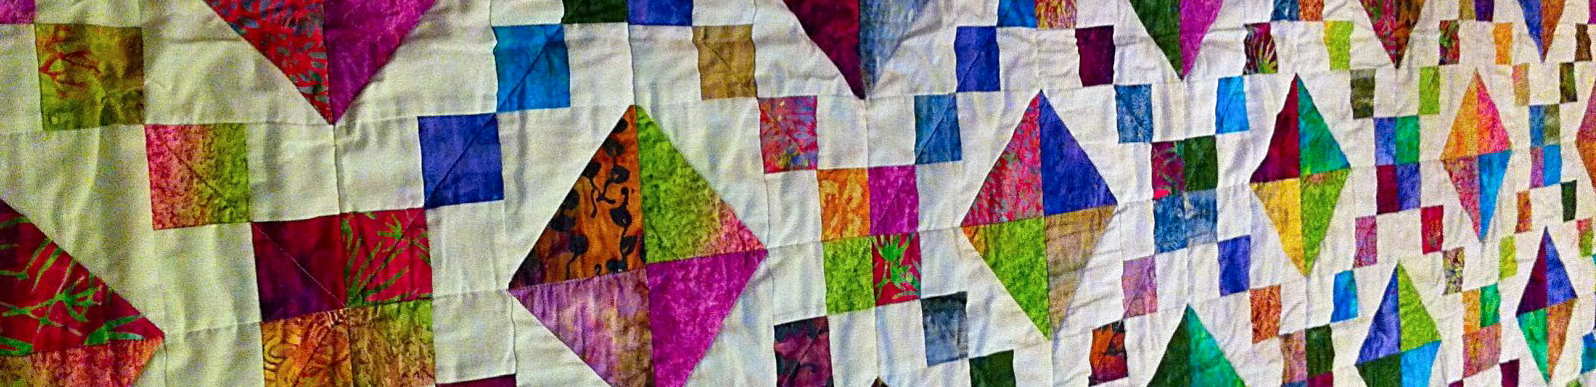 Gammas Corner Custom Made Quilts And More By Maria Ishu